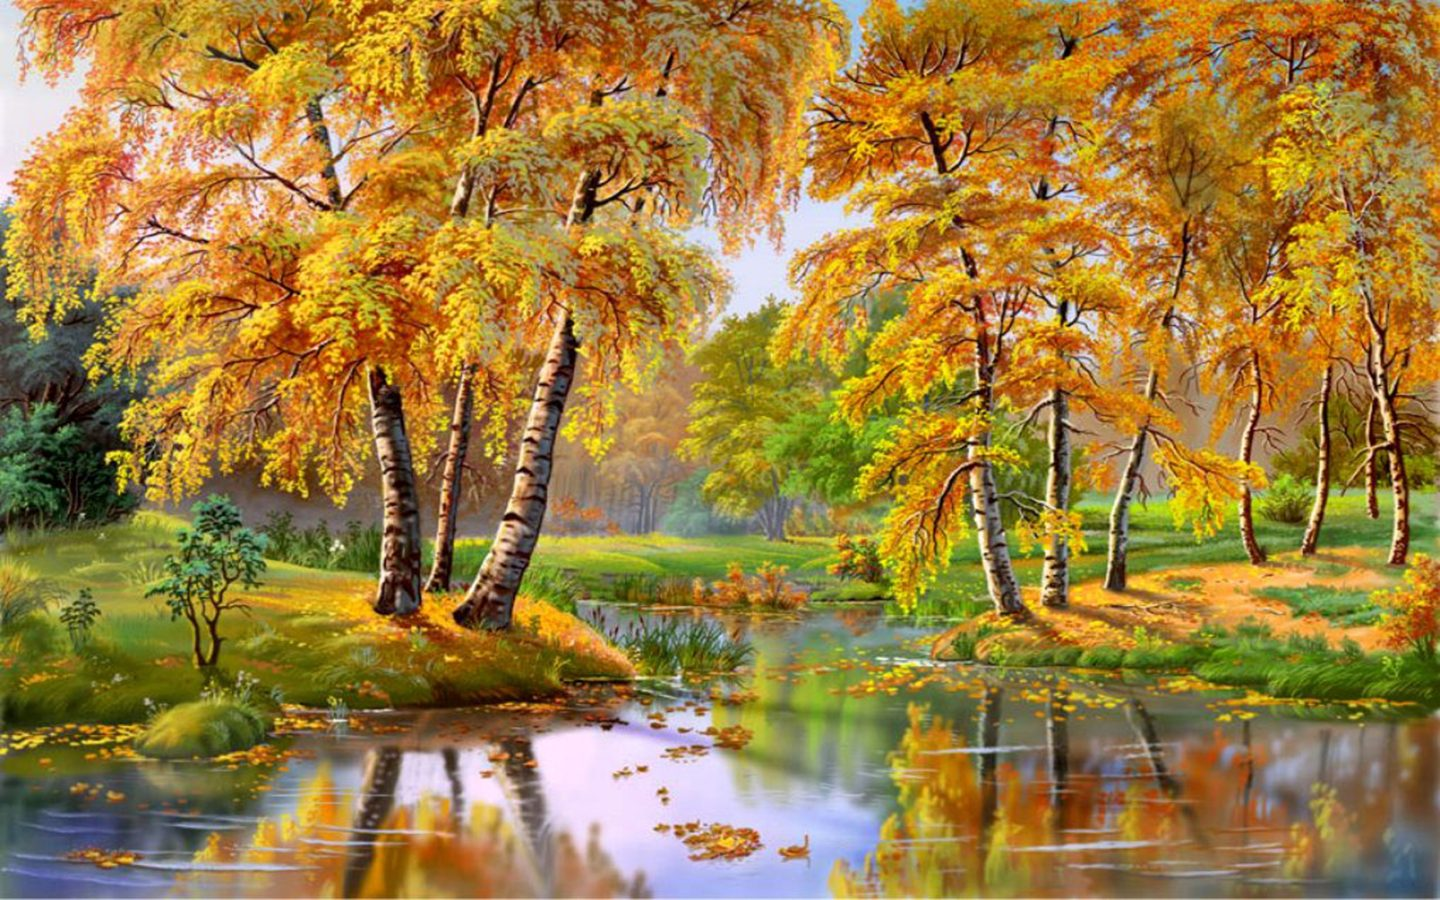 Beautiful Fall Paintings Wallpapers Wonderful Autumn Landscape River Trees 087537